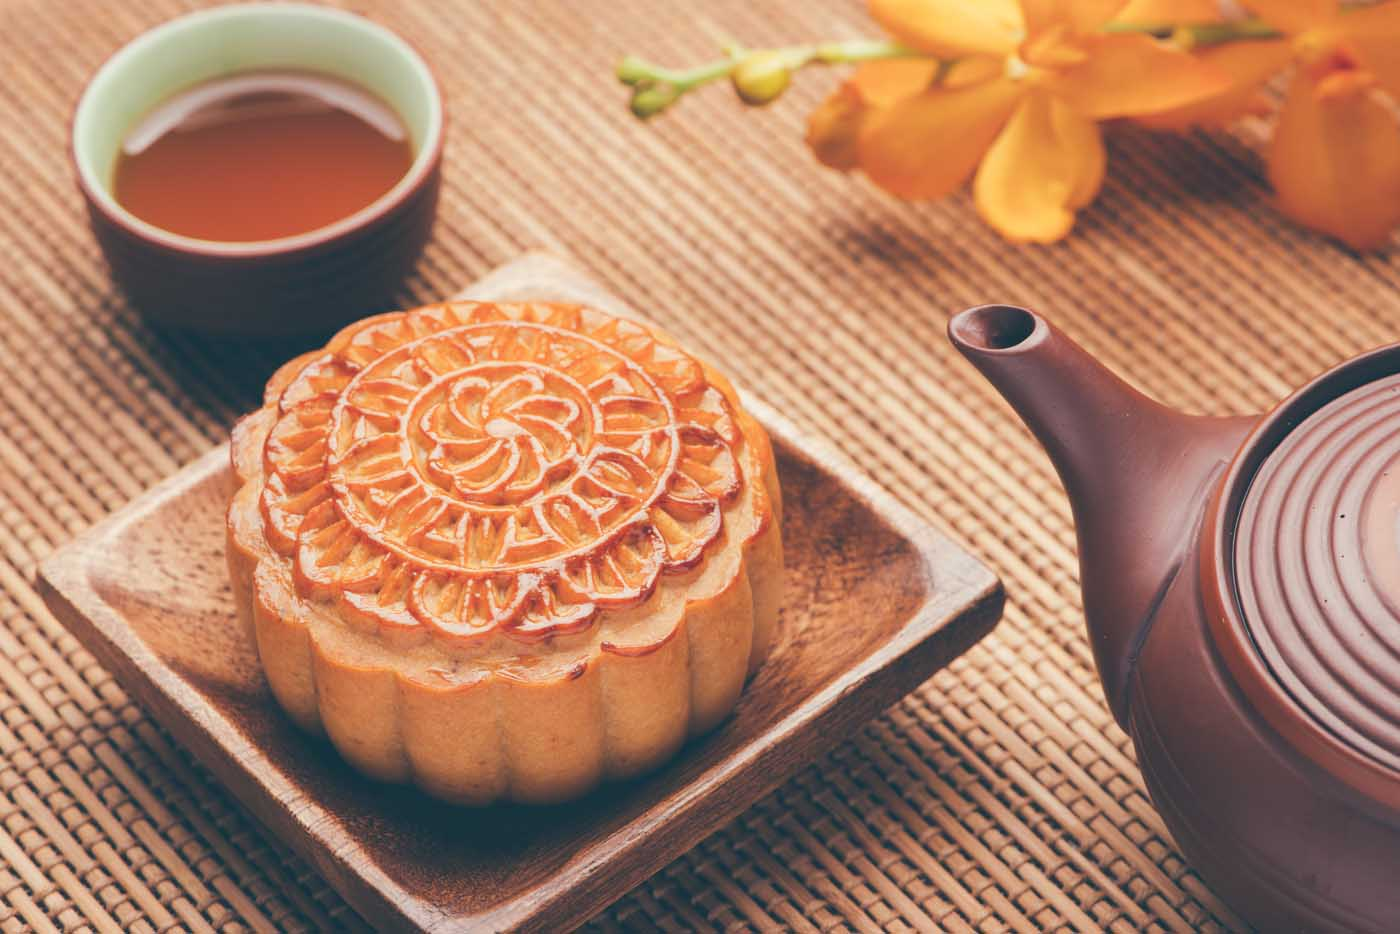 Moon cake and tea served for Chung Chiu Moon Festival